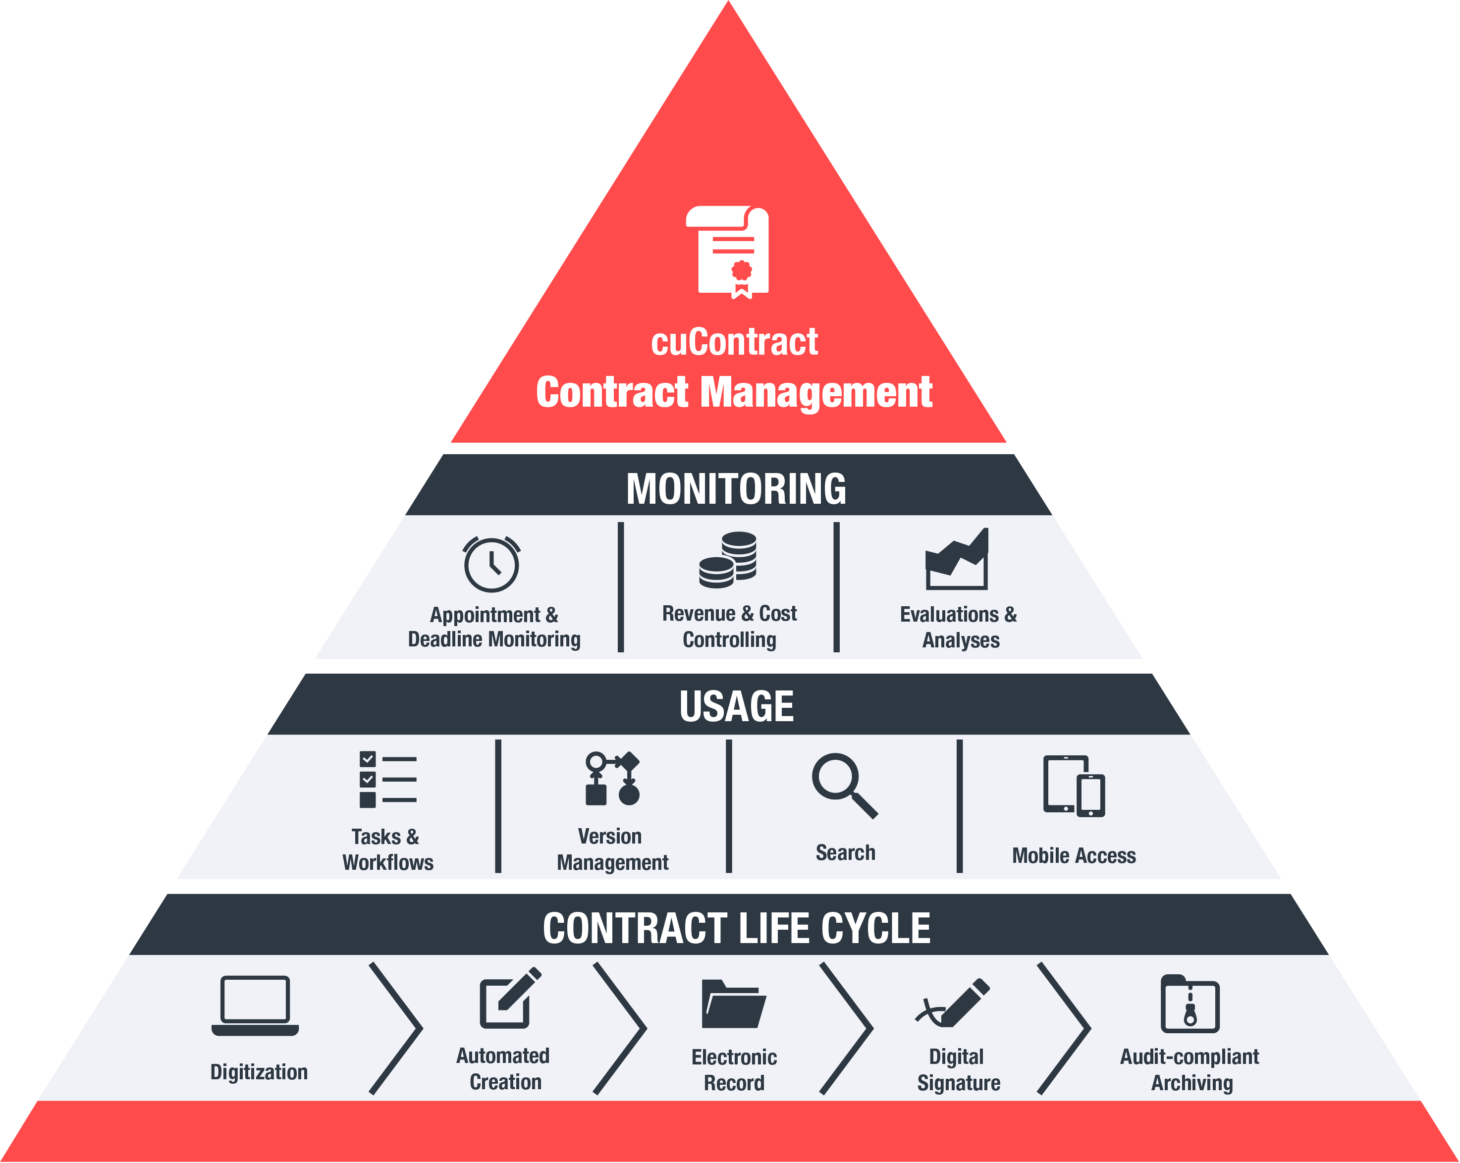 Infographic cuContract